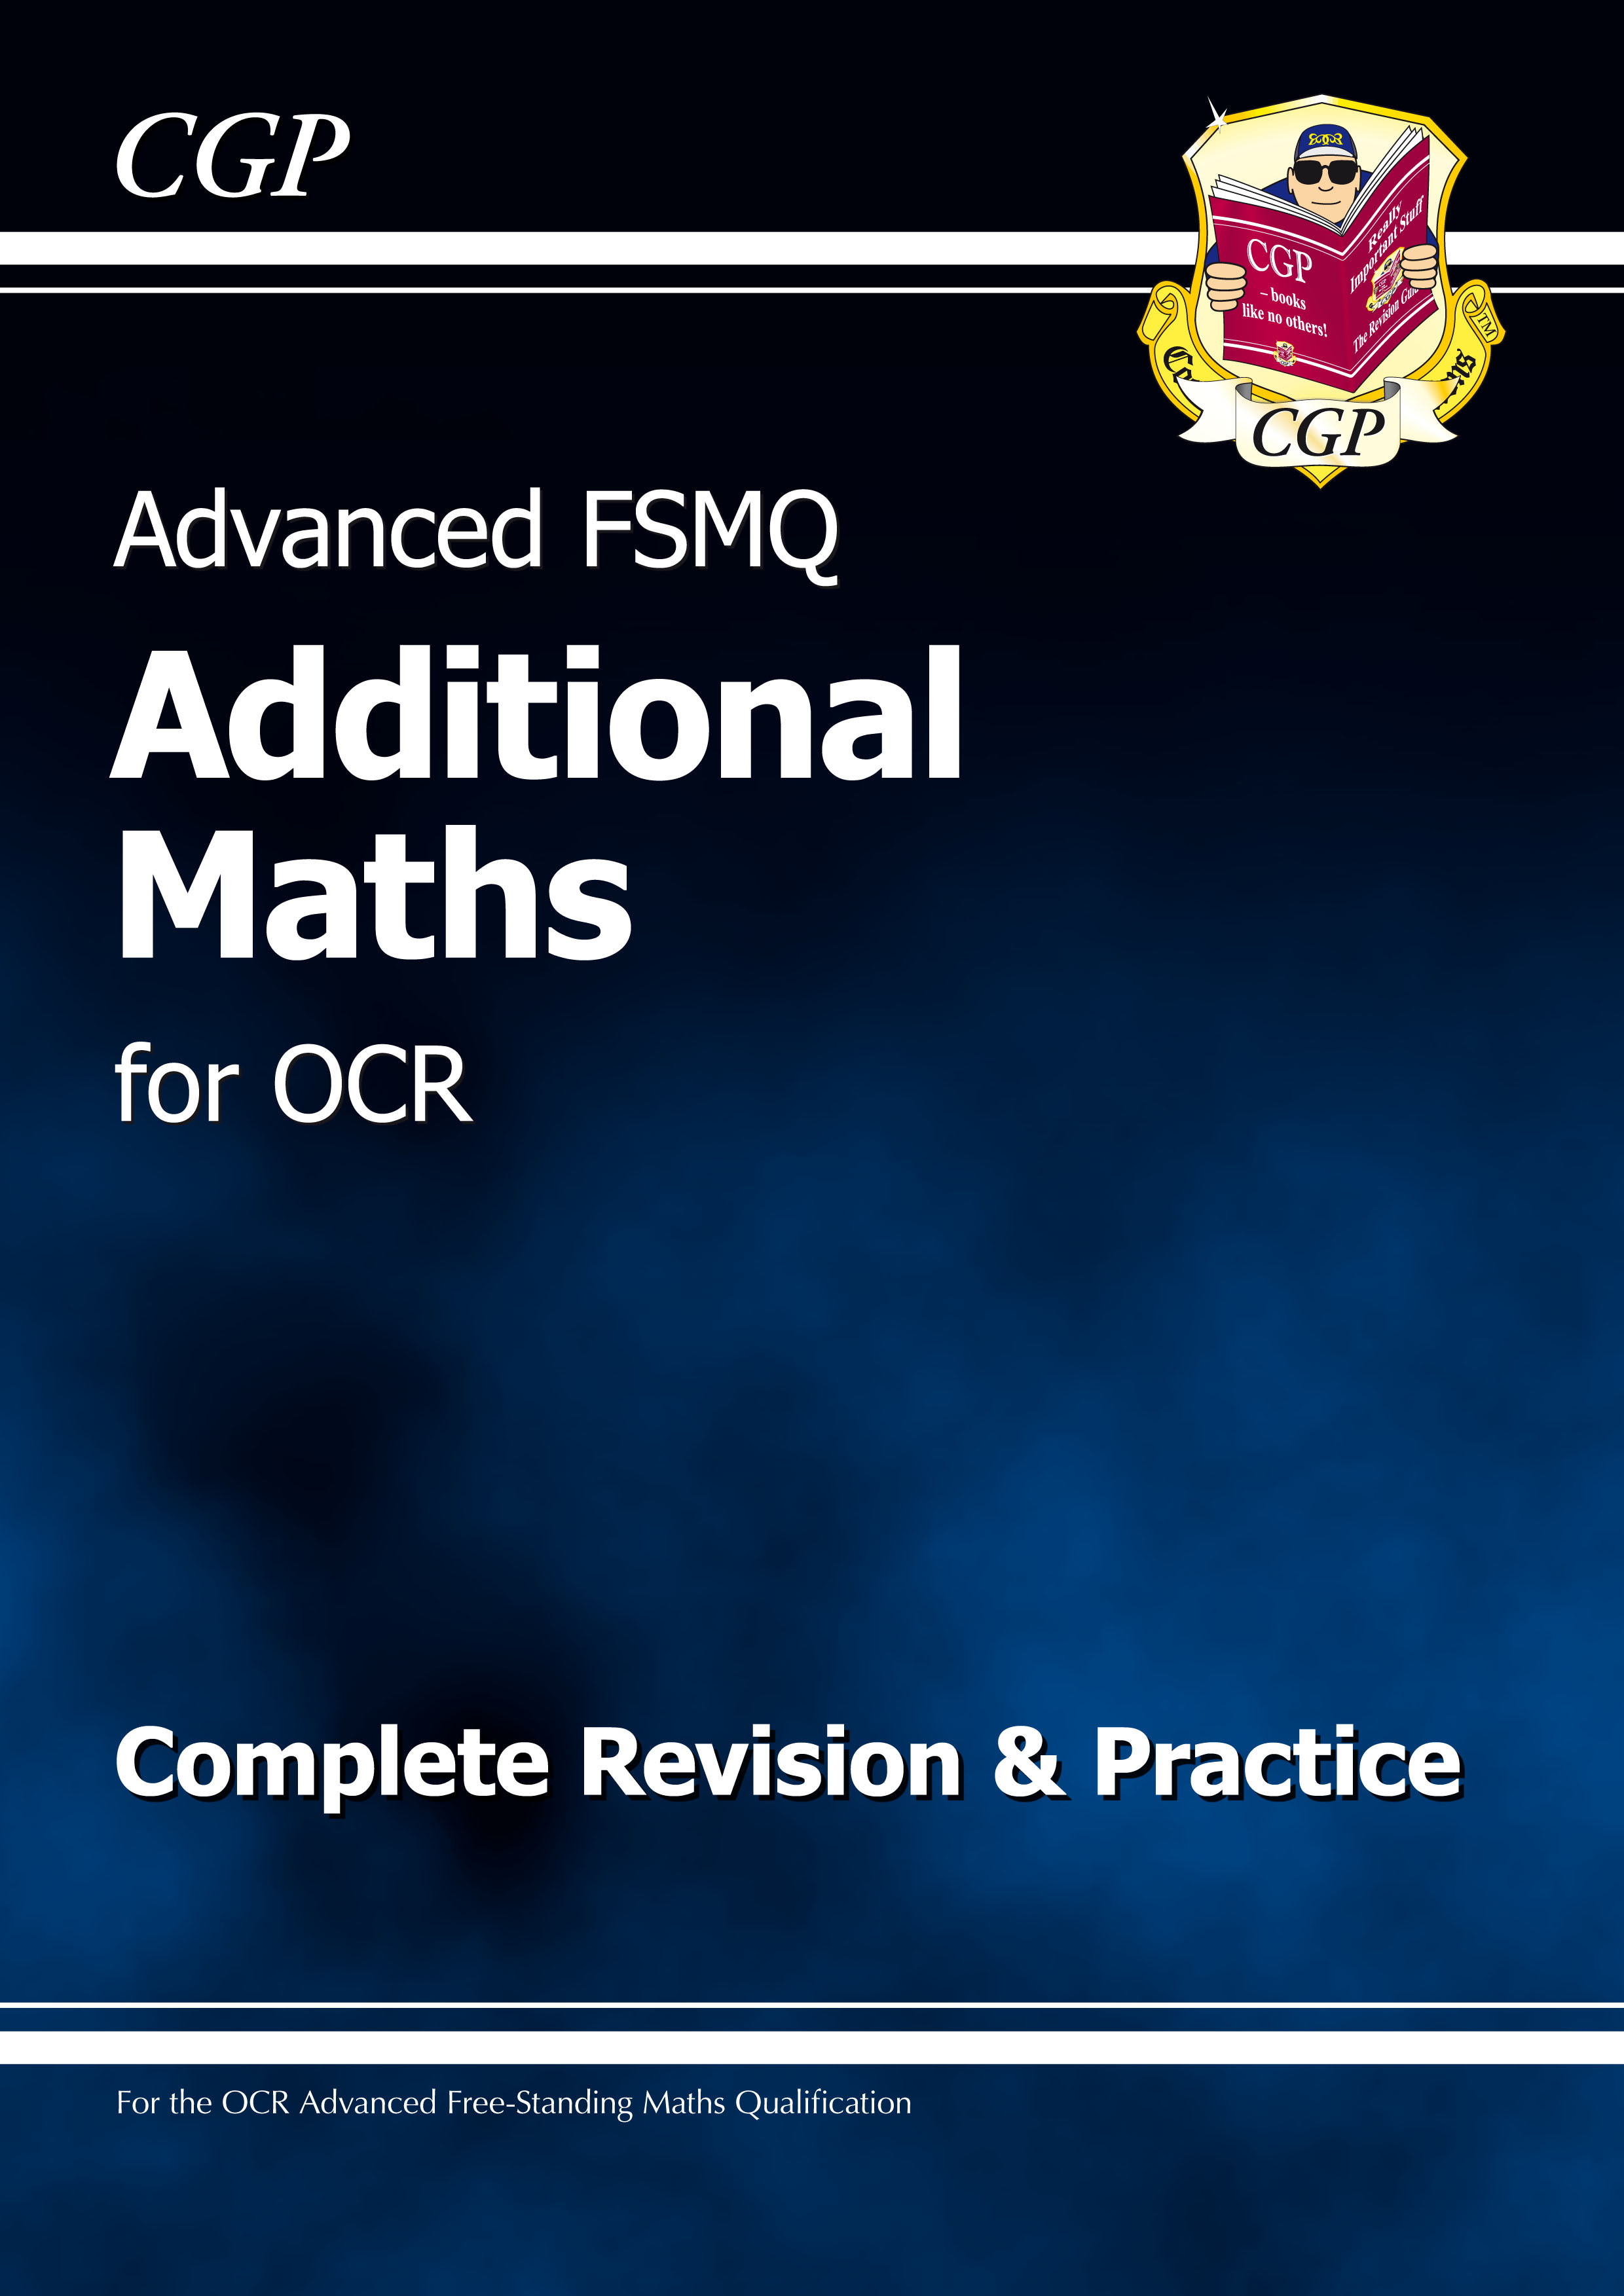 FSMQ51DK - Advanced FSMQ: Additional Mathematics for OCR - Complete Revision & Practice